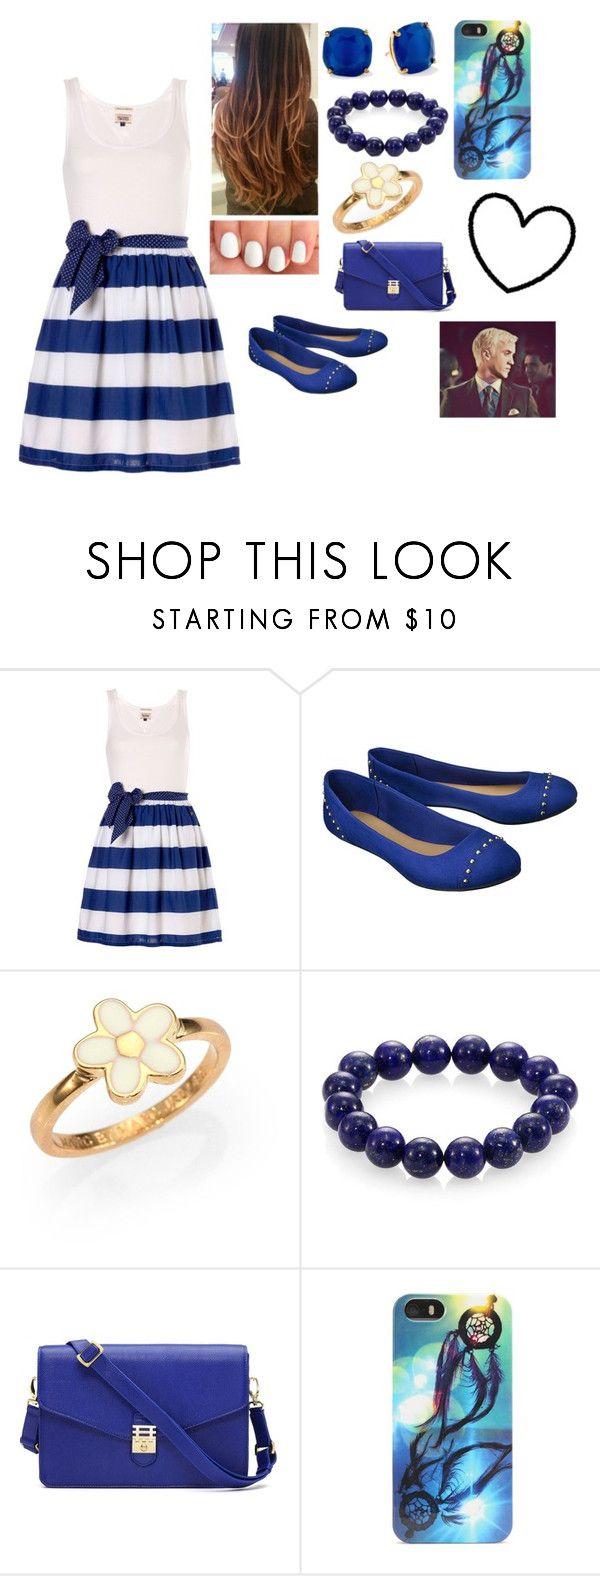 """""""Date with Draco Malfoy! (Requested)"""" by anissa-xoxo ❤ liked on Polyvore featuring Tommy Hilfiger, Merona, Marc by Marc Jacobs, Nest, Kate Spade and With Love From CA"""